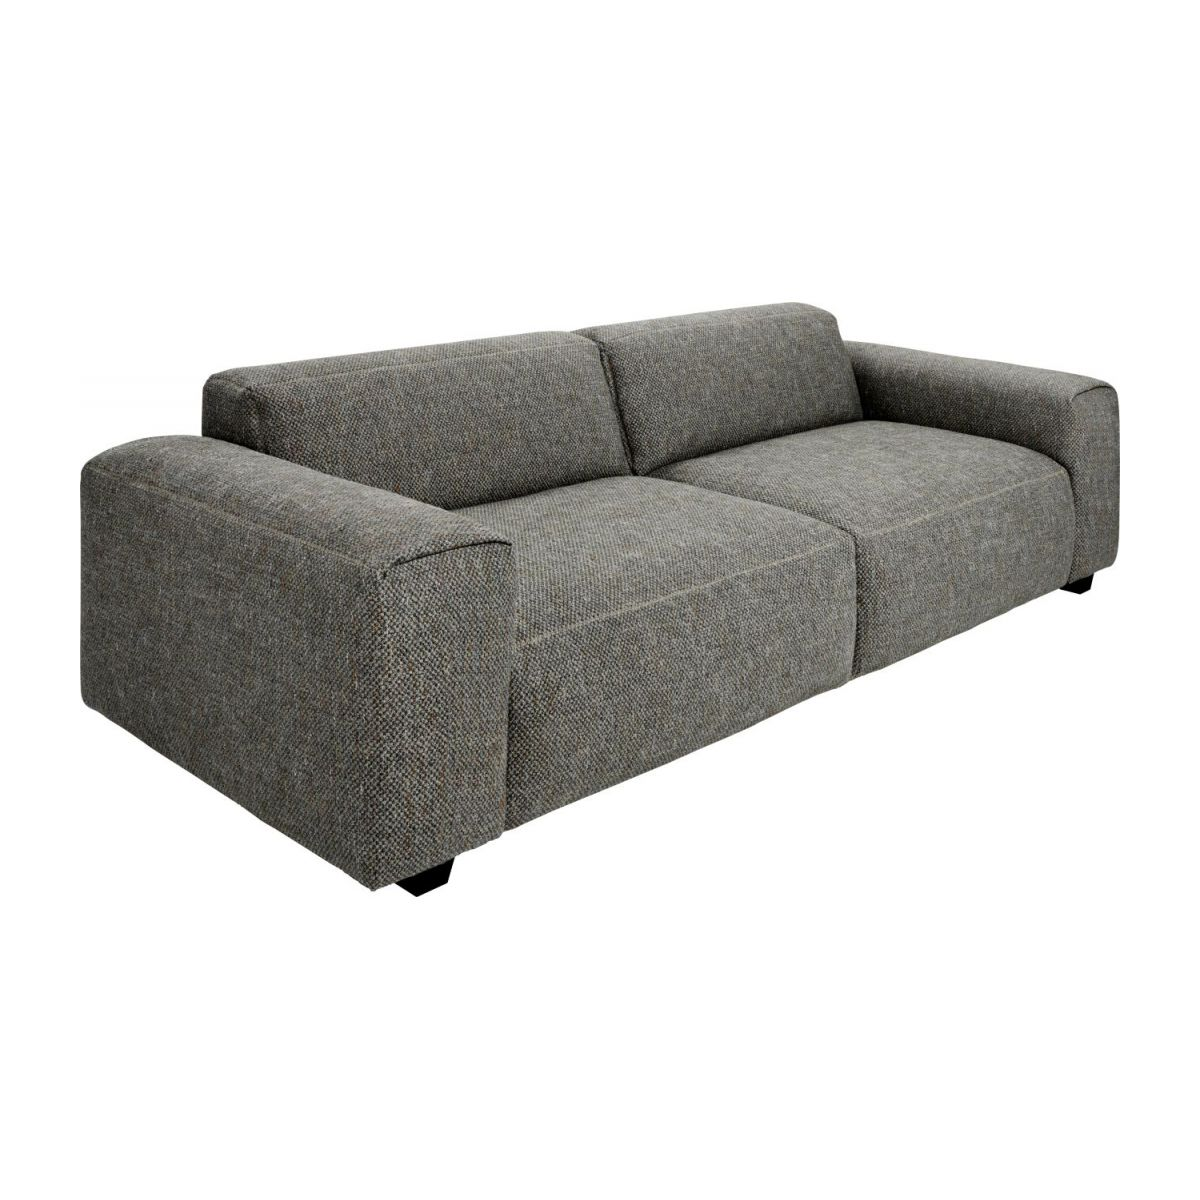 4-Sitzer Sofa aus Stoff Bellagio night black n°1